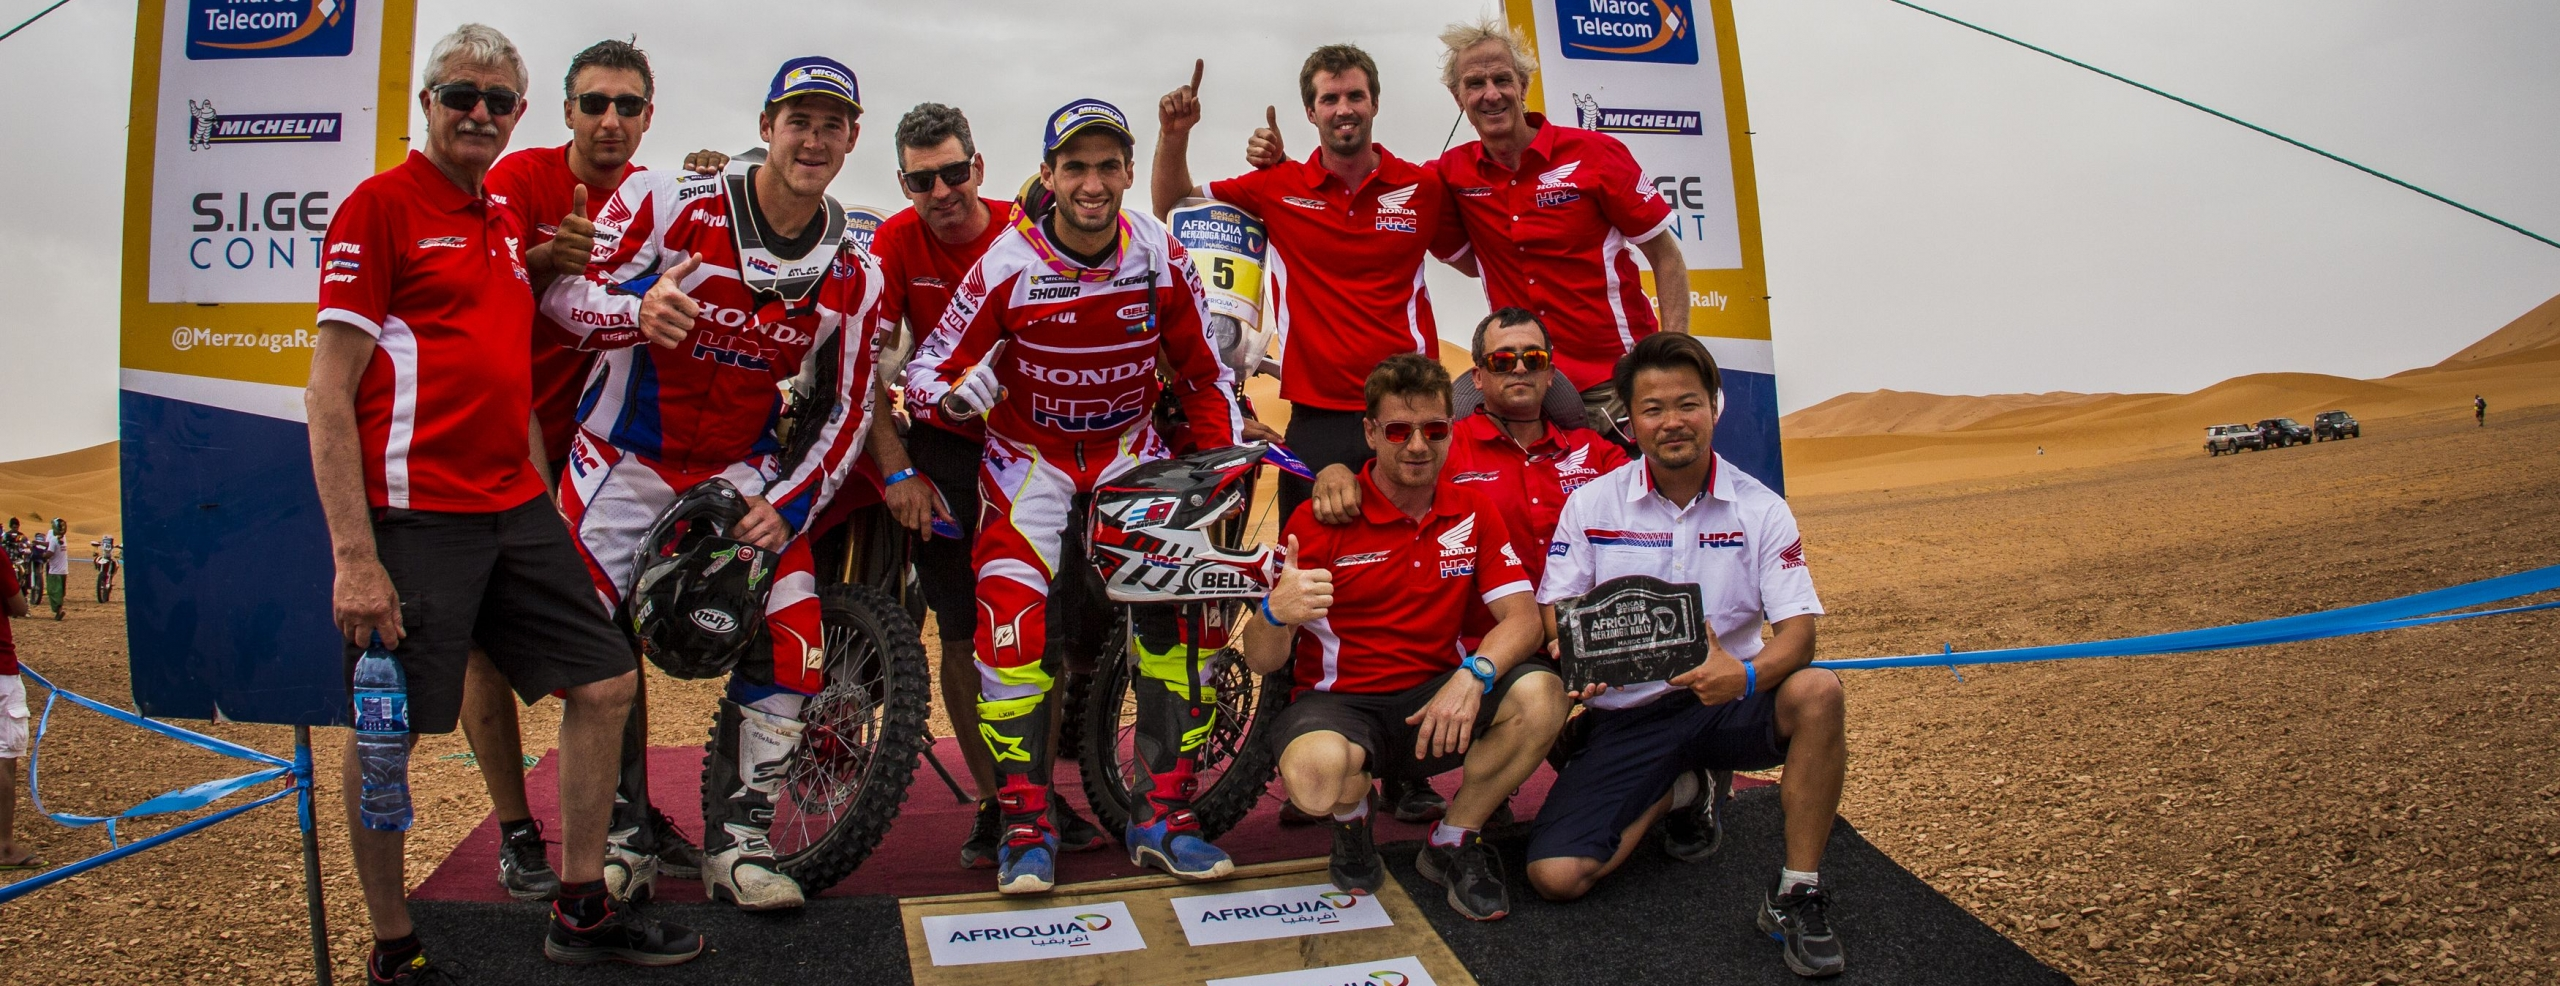 Kevin Benavides and Team HRC win the Merzouga Rally